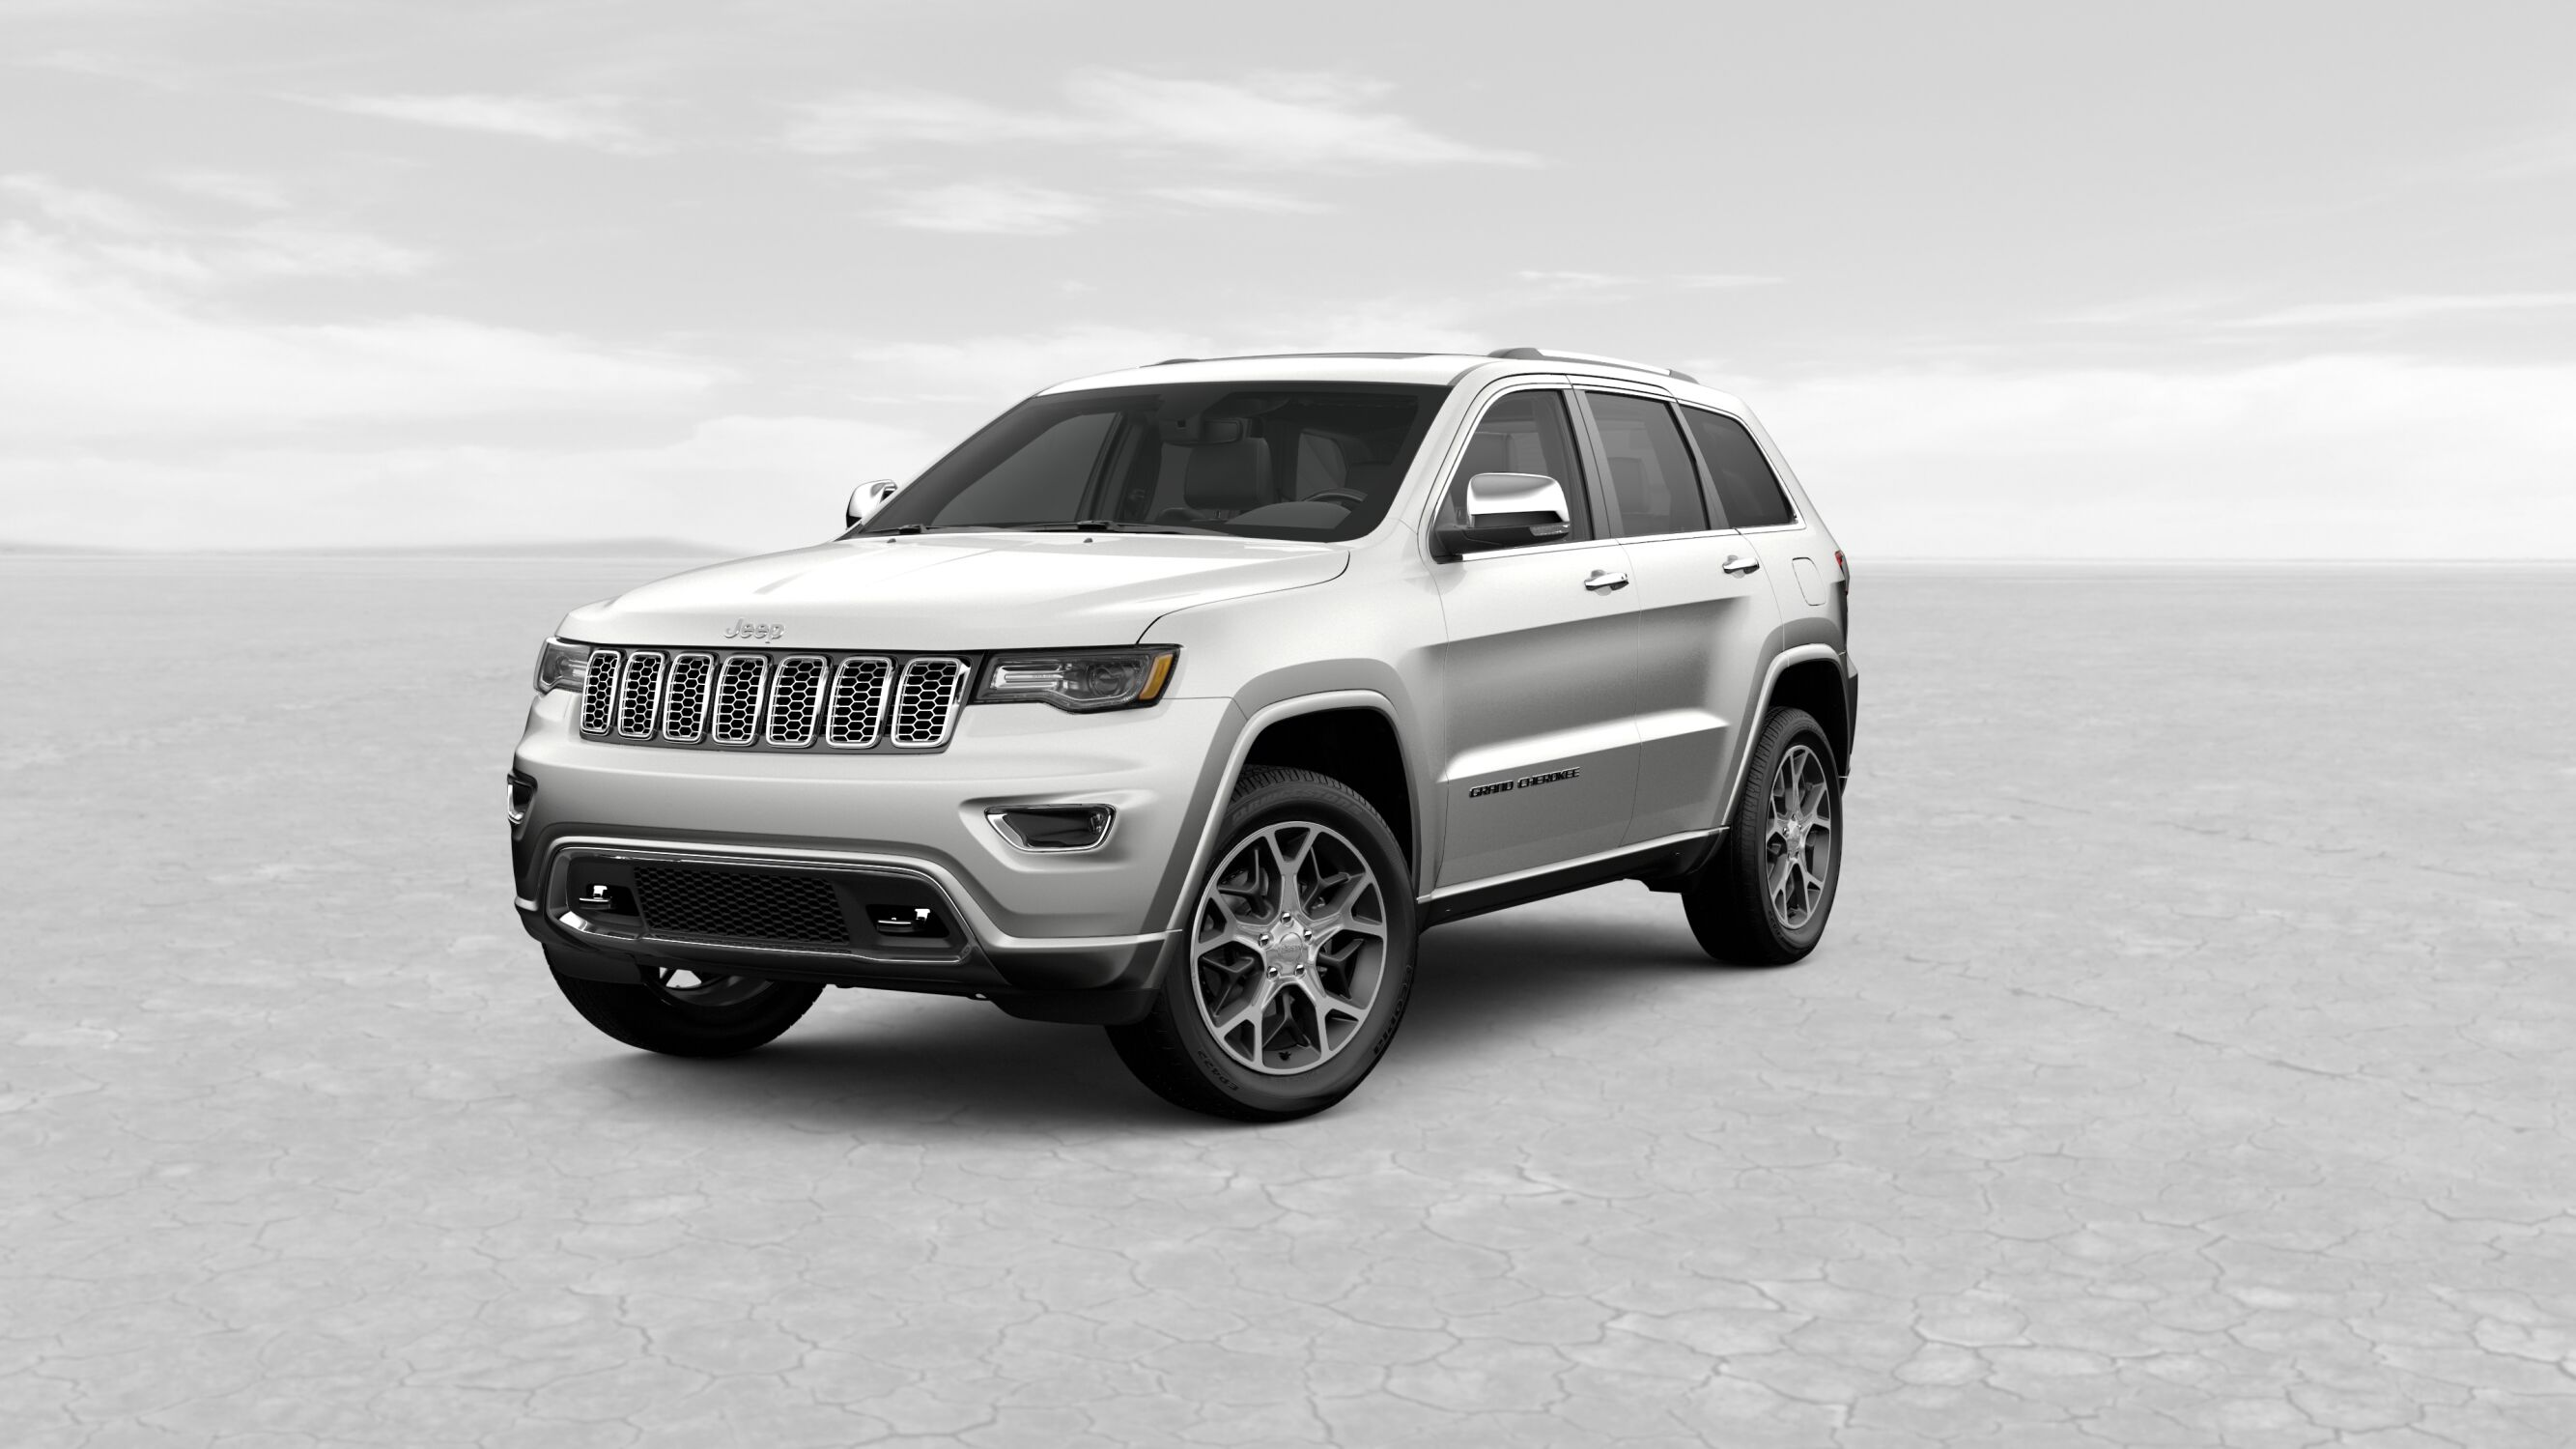 2019 Jeep Grand Cherokee Overland Ivory White Exterior Front View